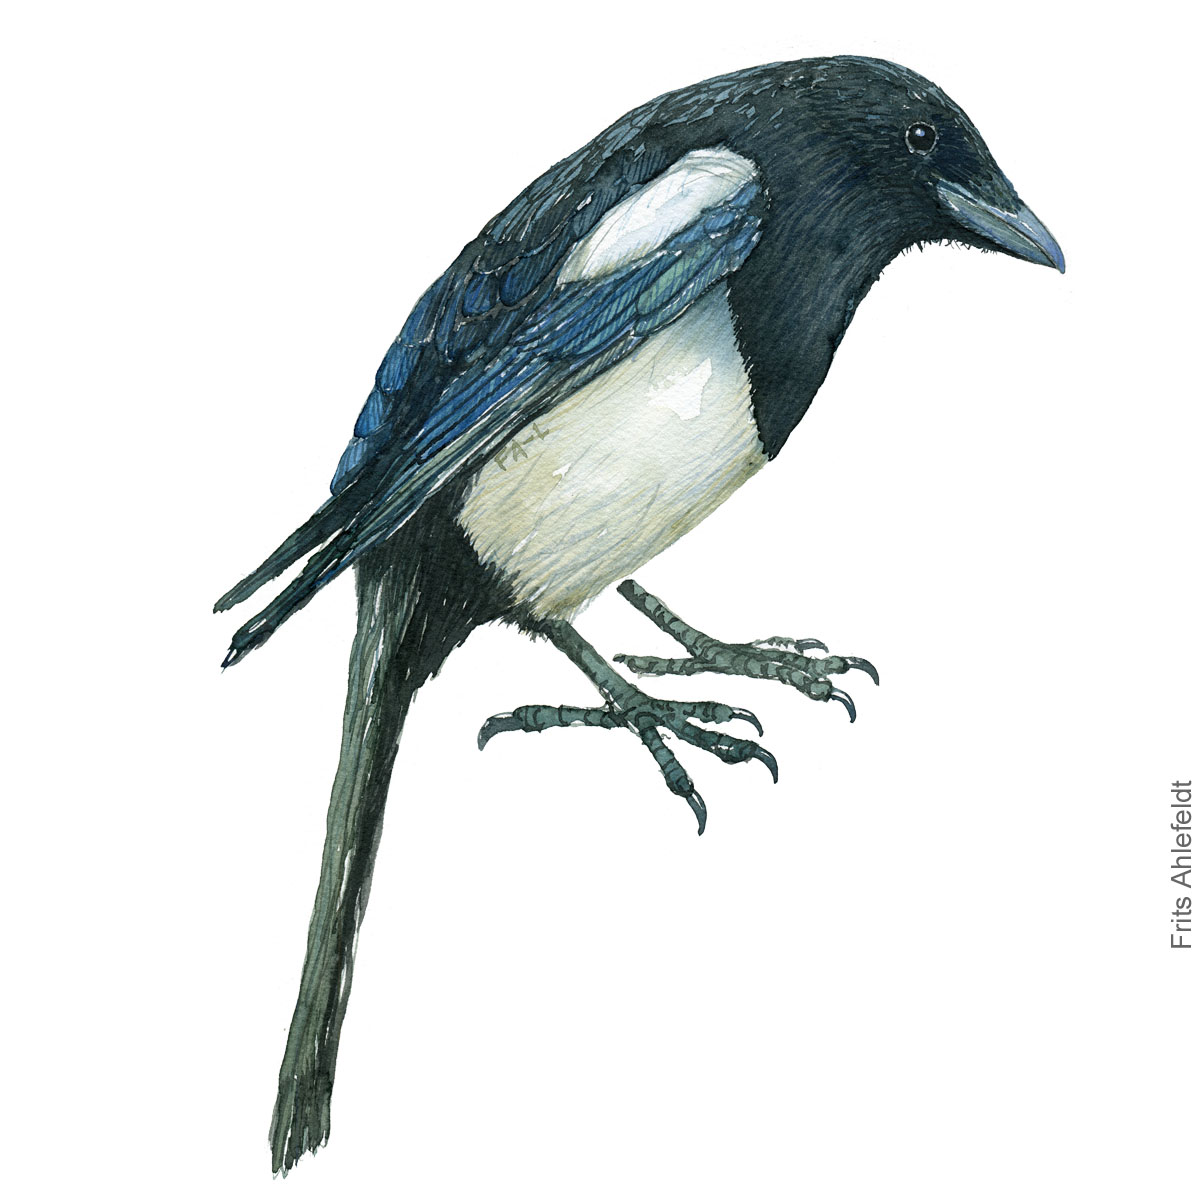 European magpie - Pica pica. Watercolor illustration by Frits Ahlefeldt